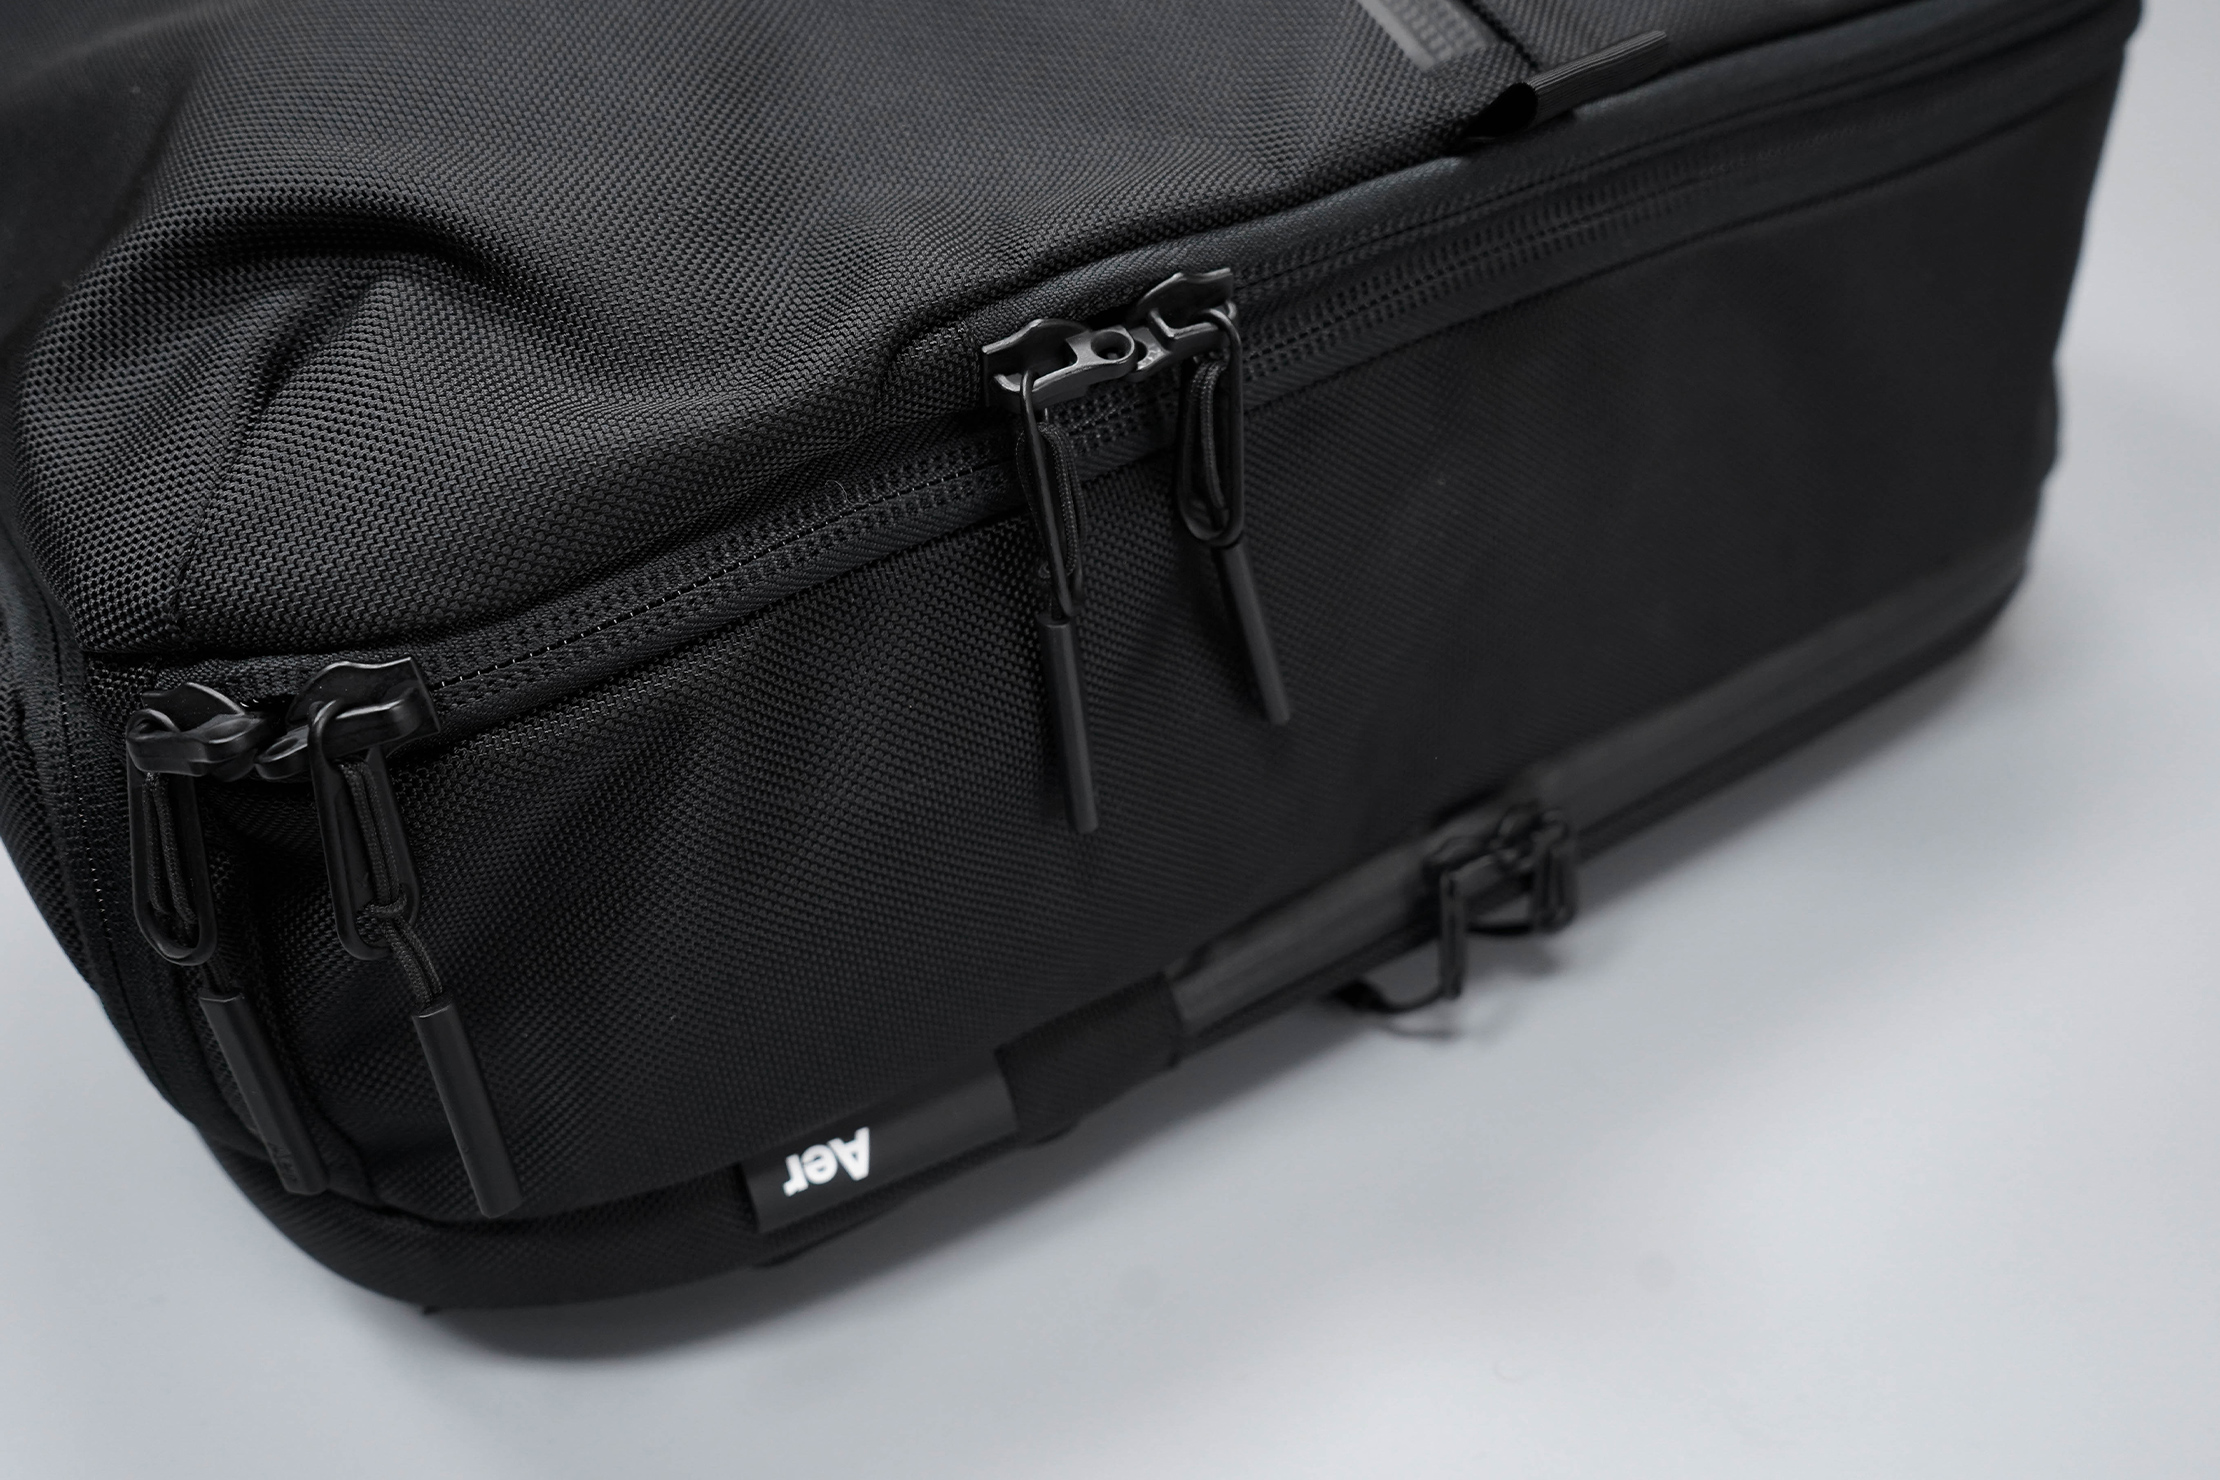 Aer Travel Pack 2 Small Side